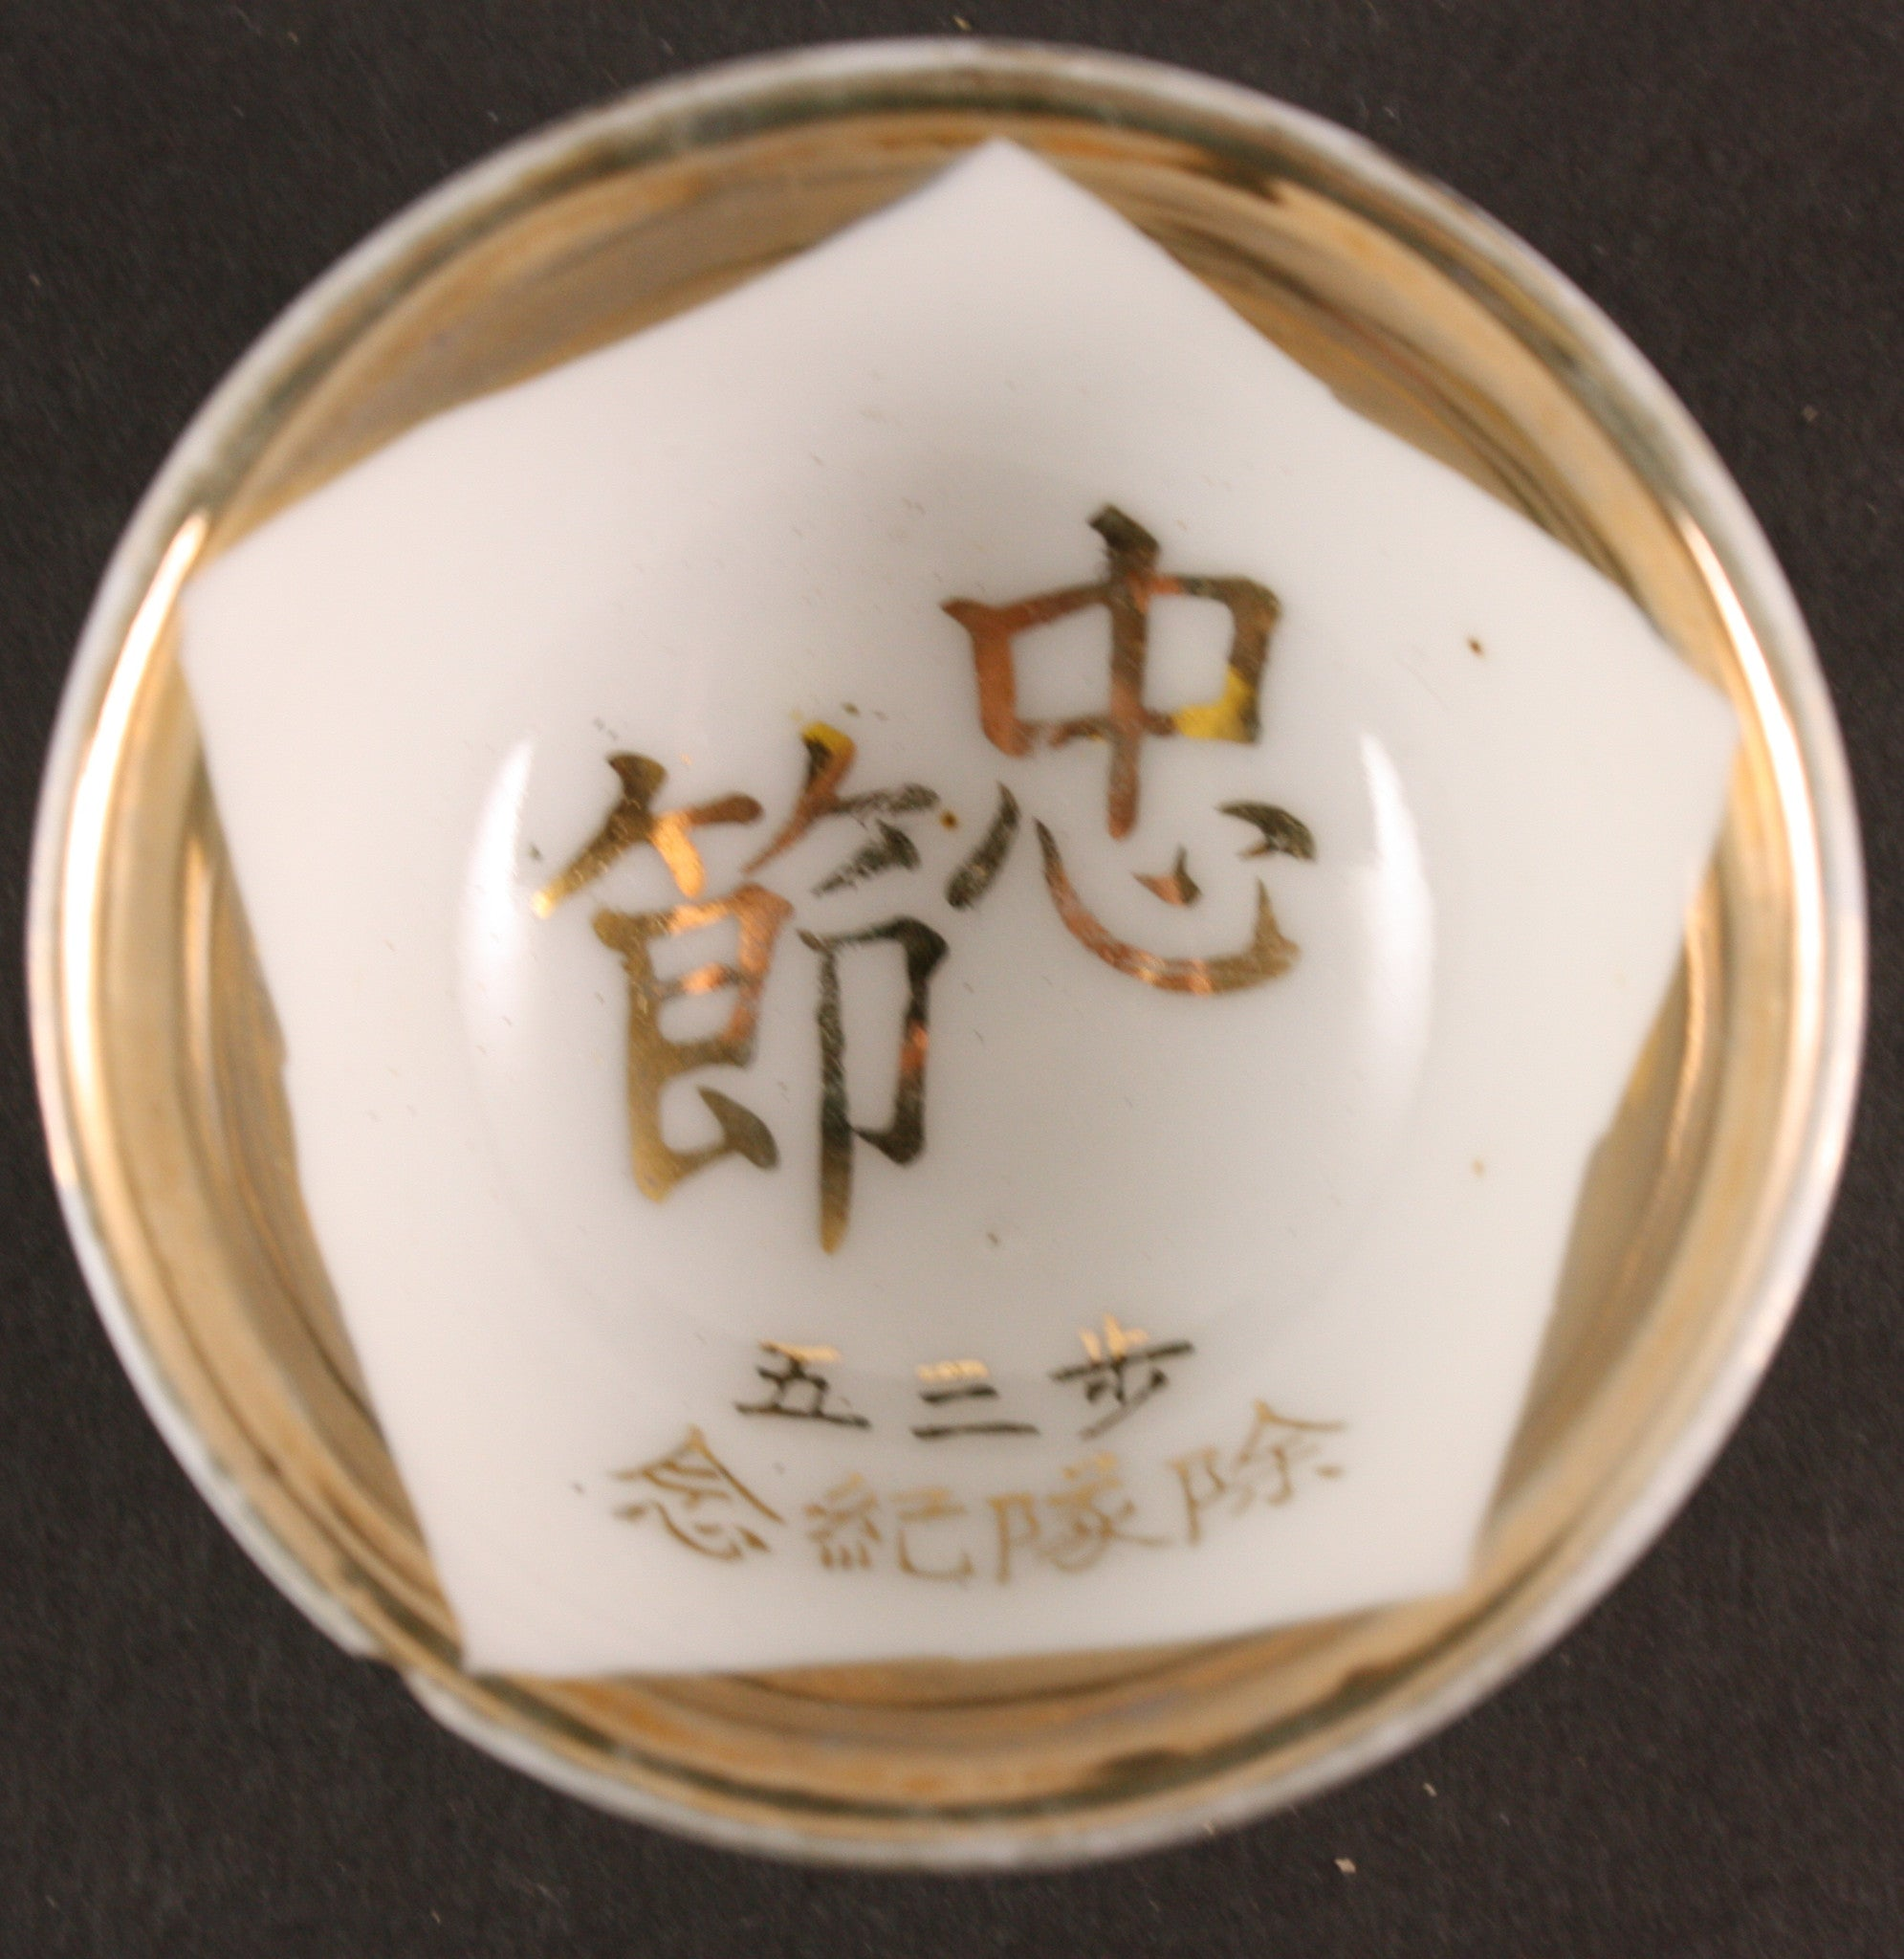 Set of 5 Antique Japanese Military Five Virtues Wargames Army Sake Cup